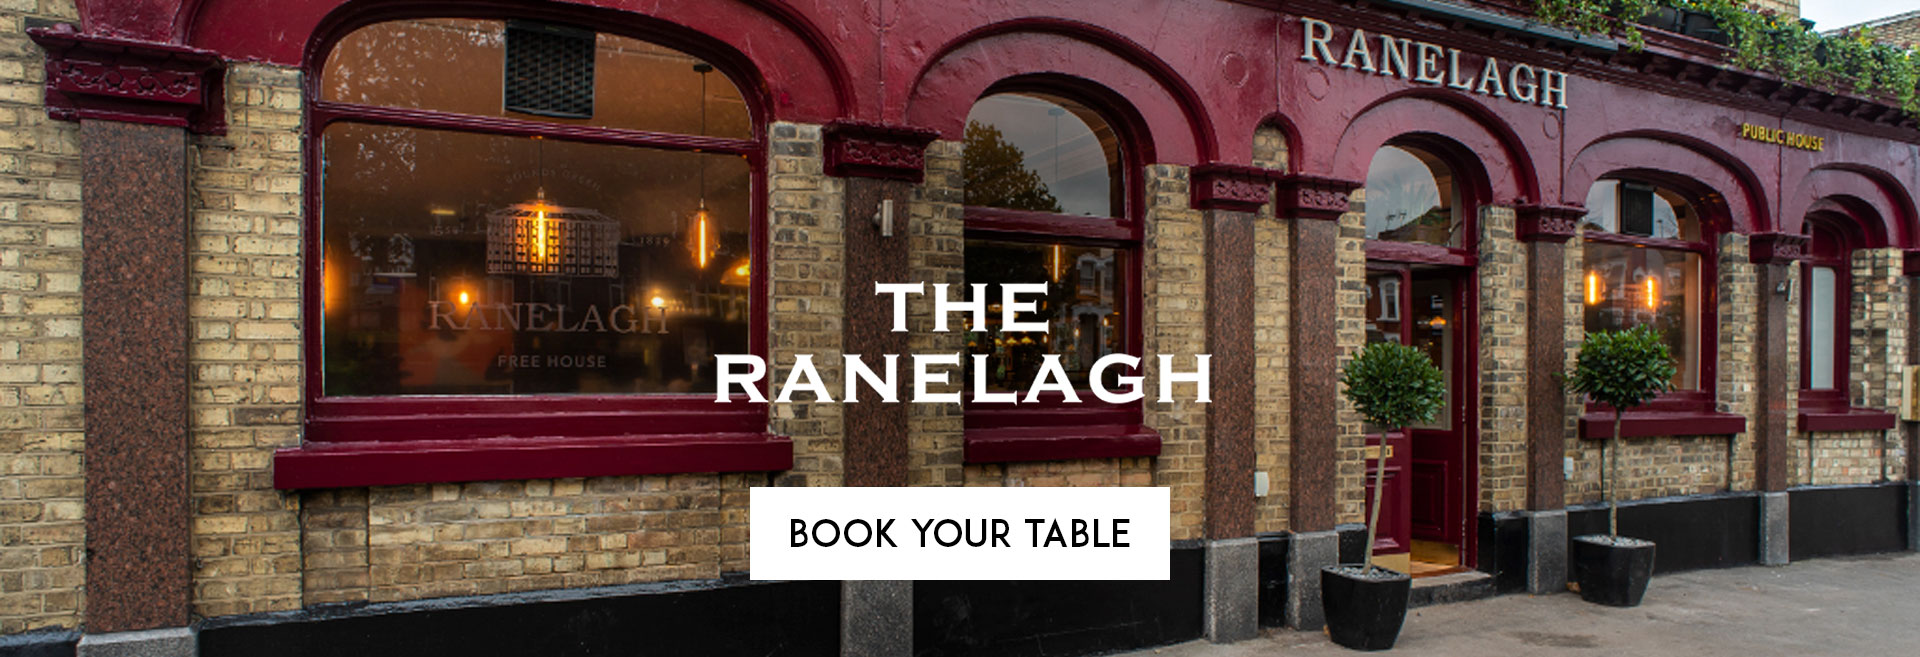 Book Your Table at The Ranelagh